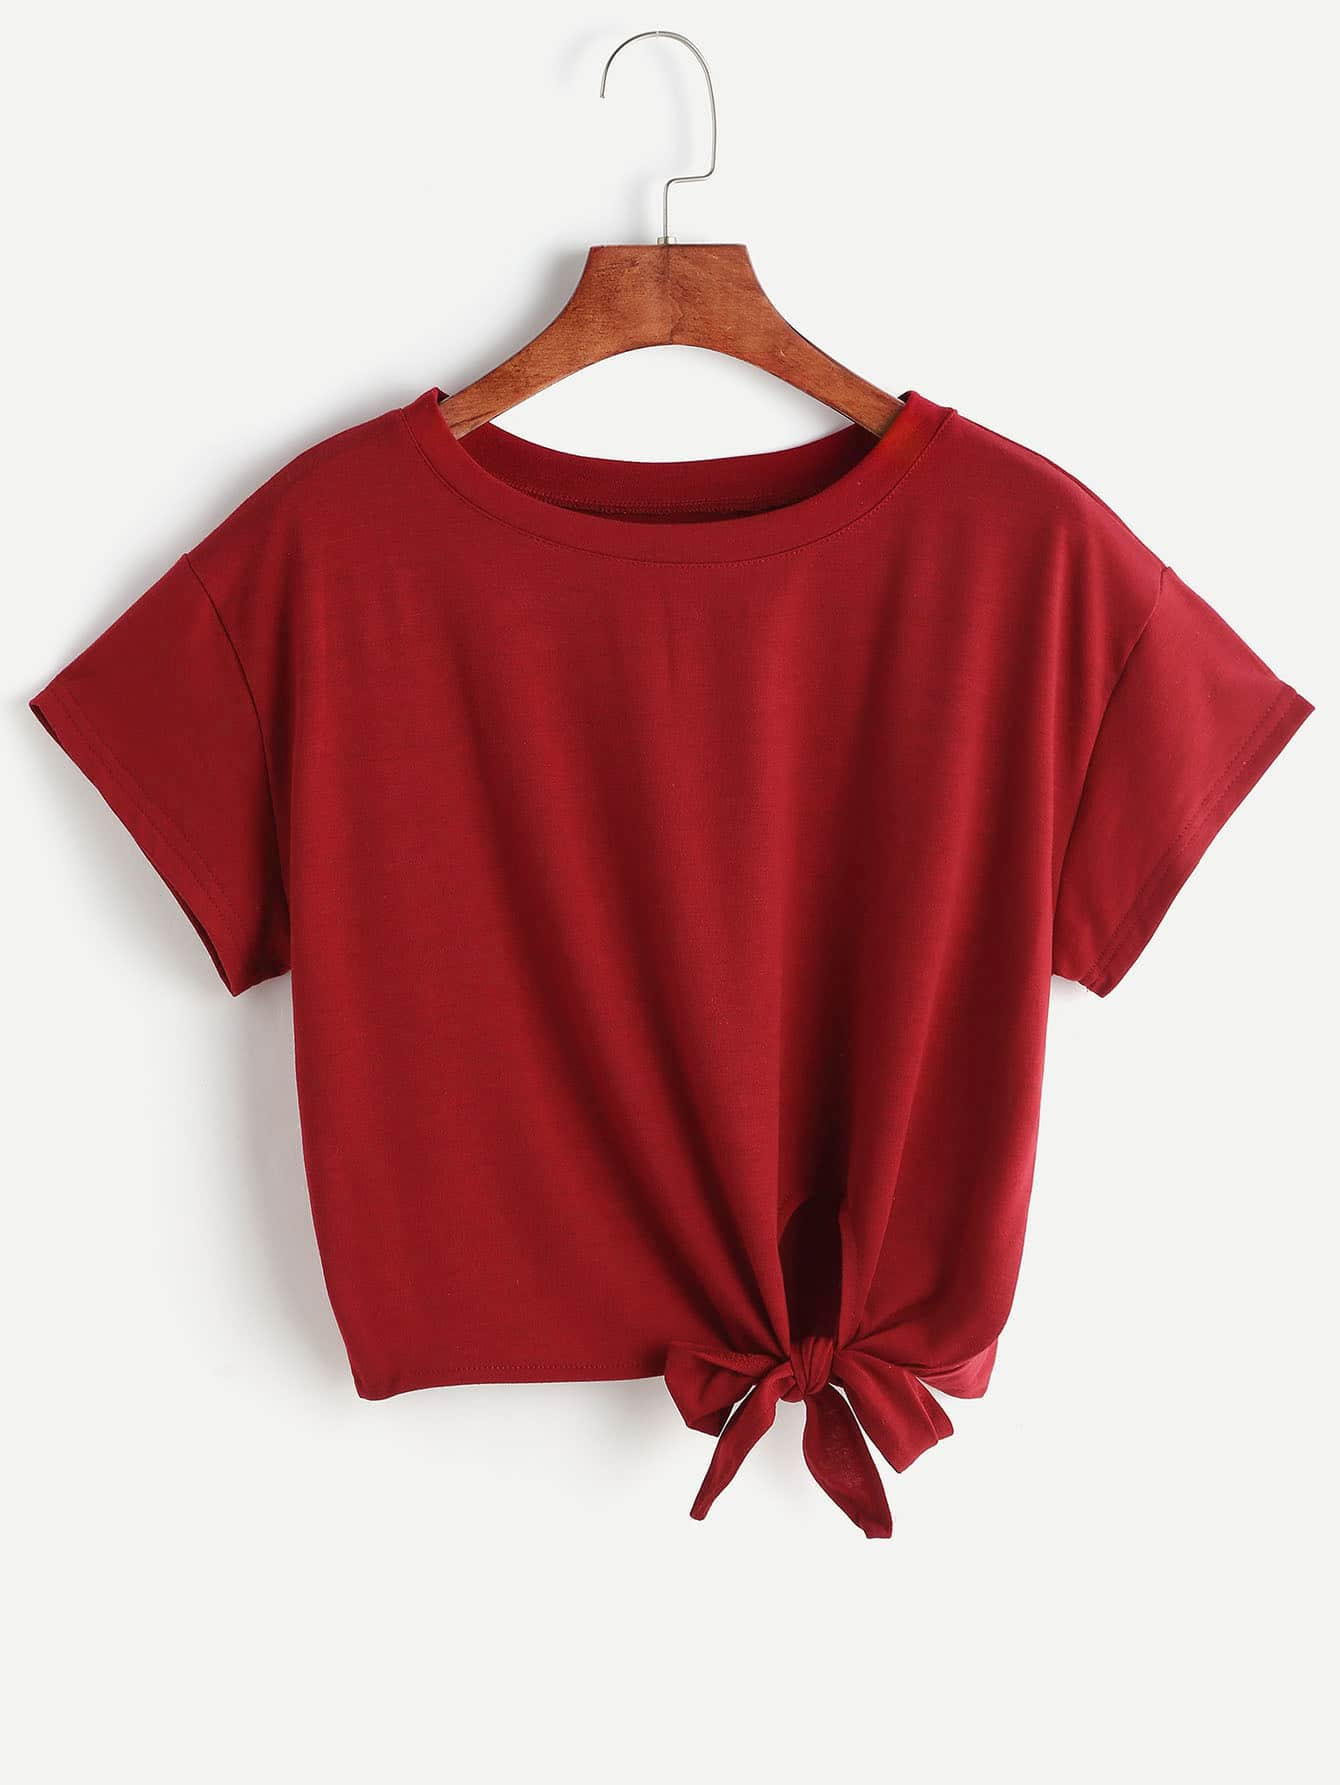 Knot Front Tshirt knot front fit